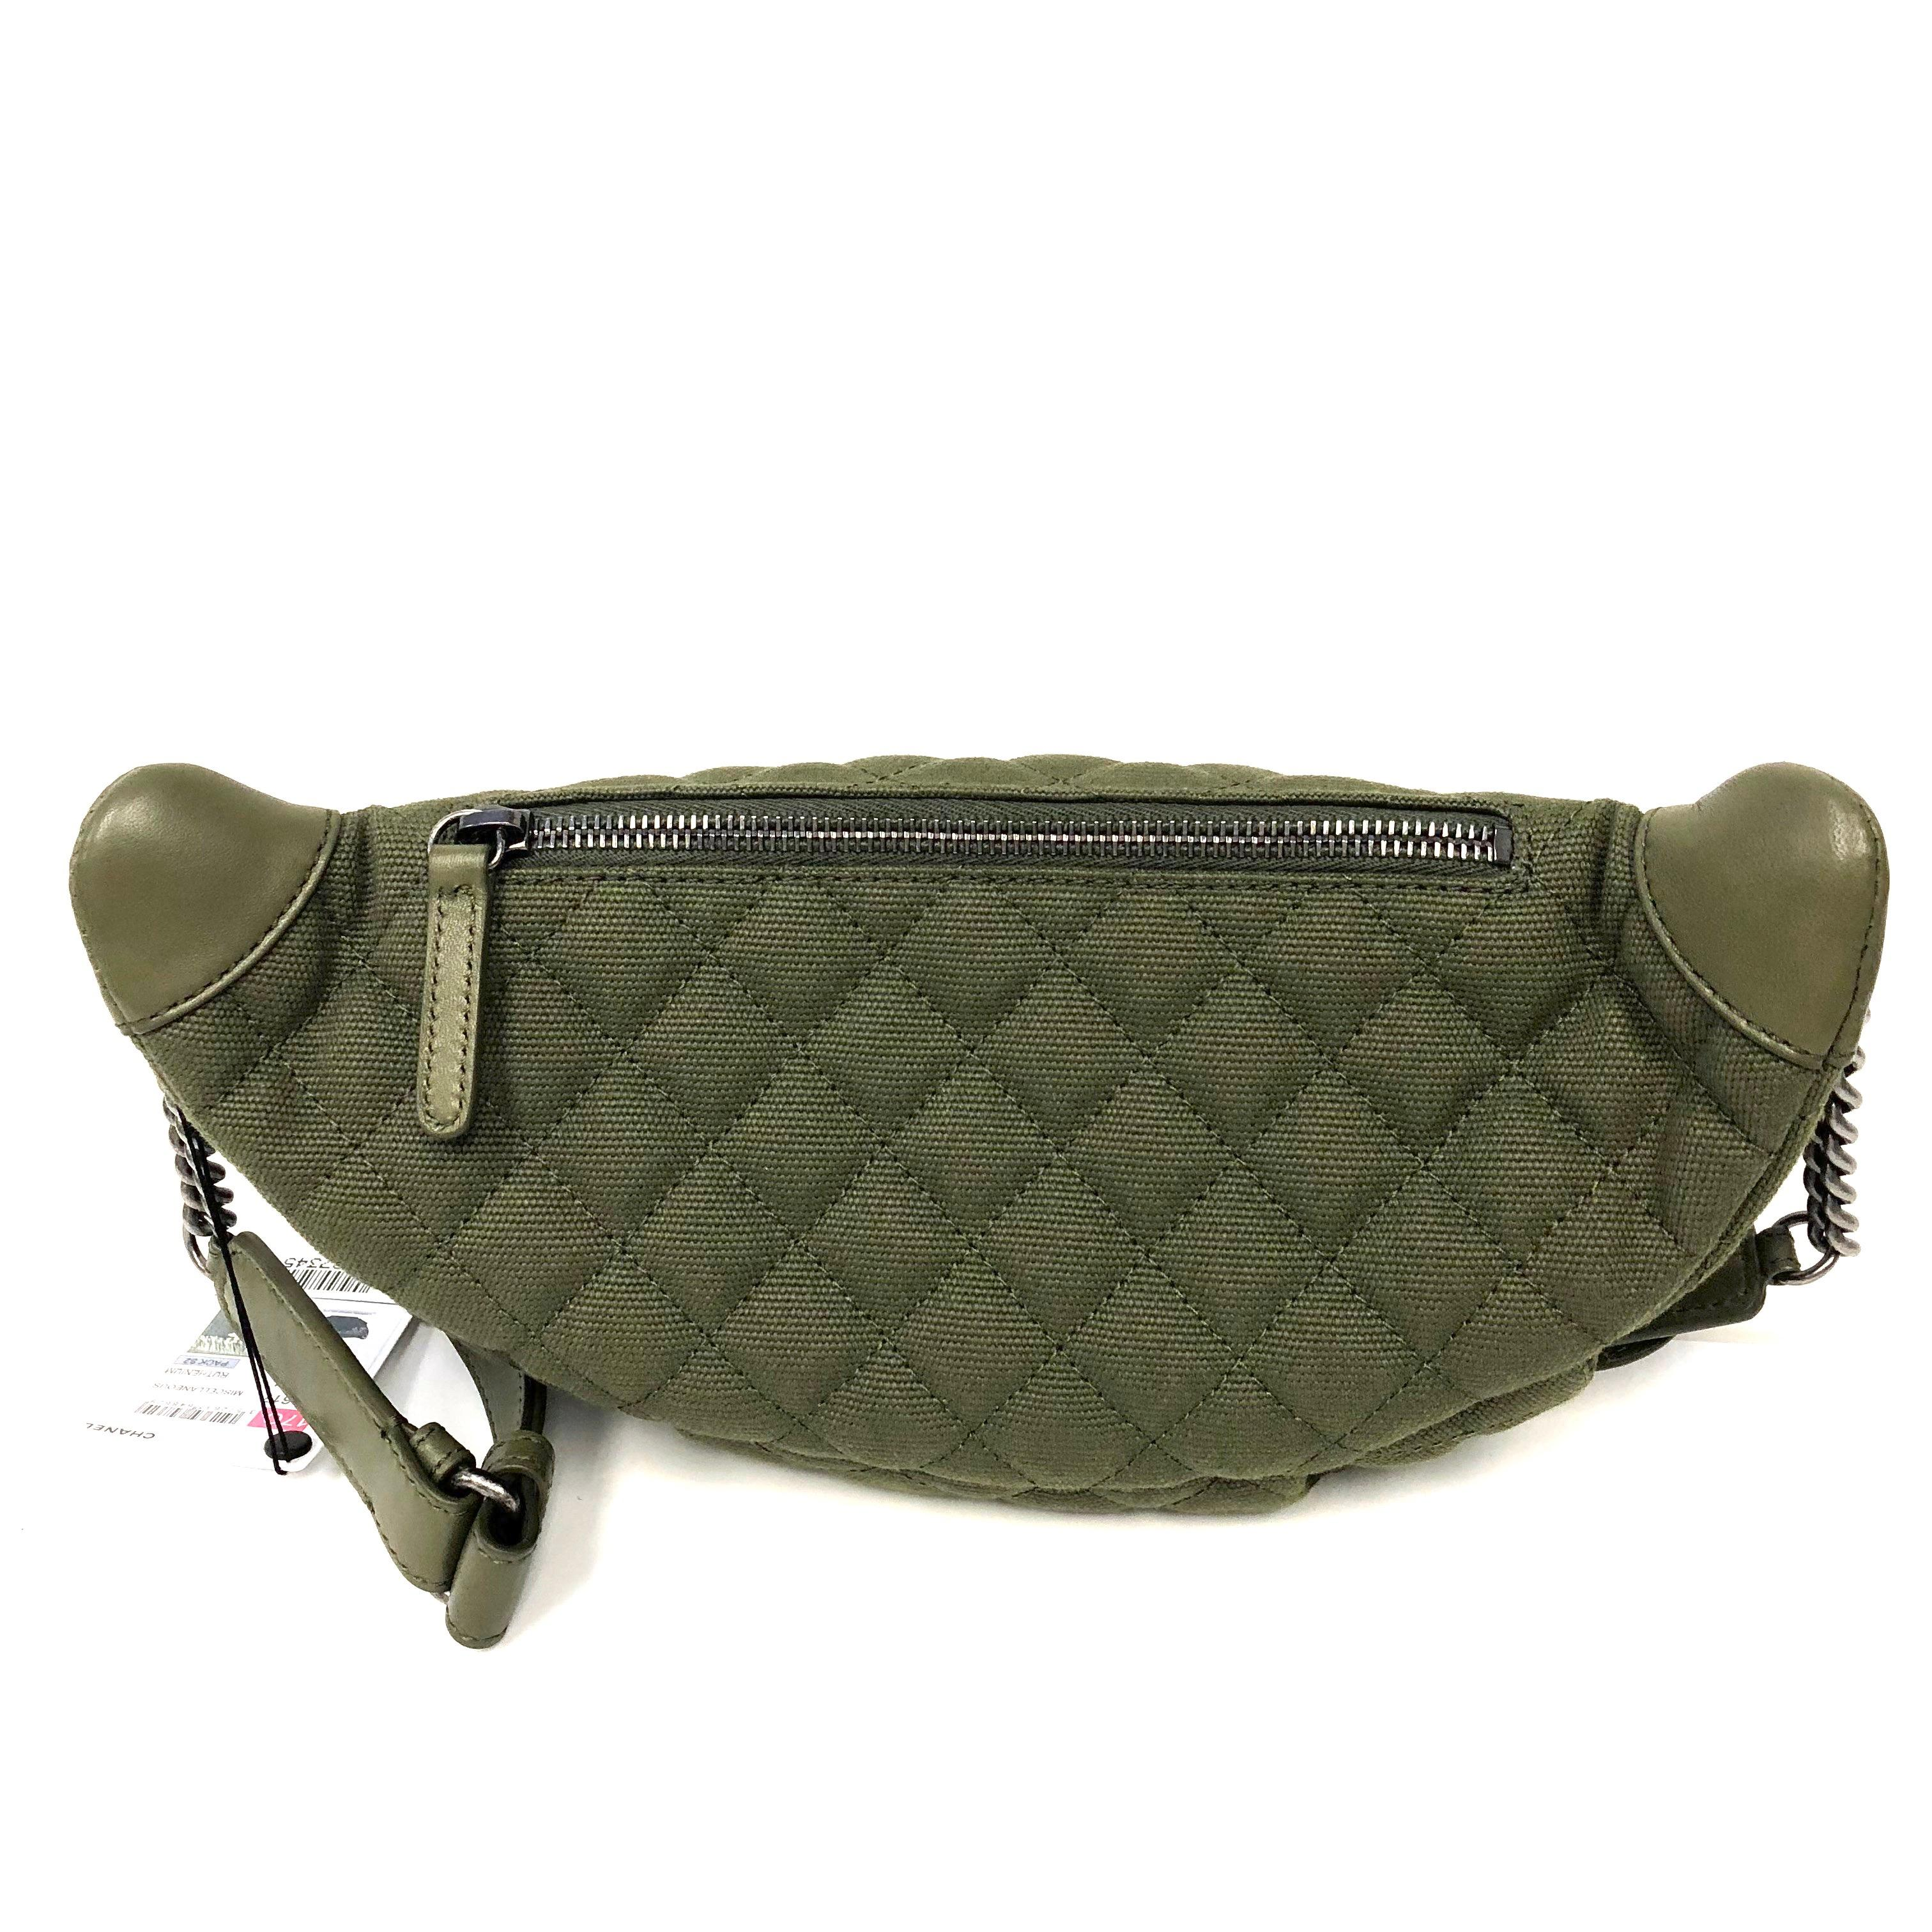 Chanel cruise quilted coco cuba charms khaki waist bag fanny pack for sale  jpg 768x768 Coco e33726c570b0b